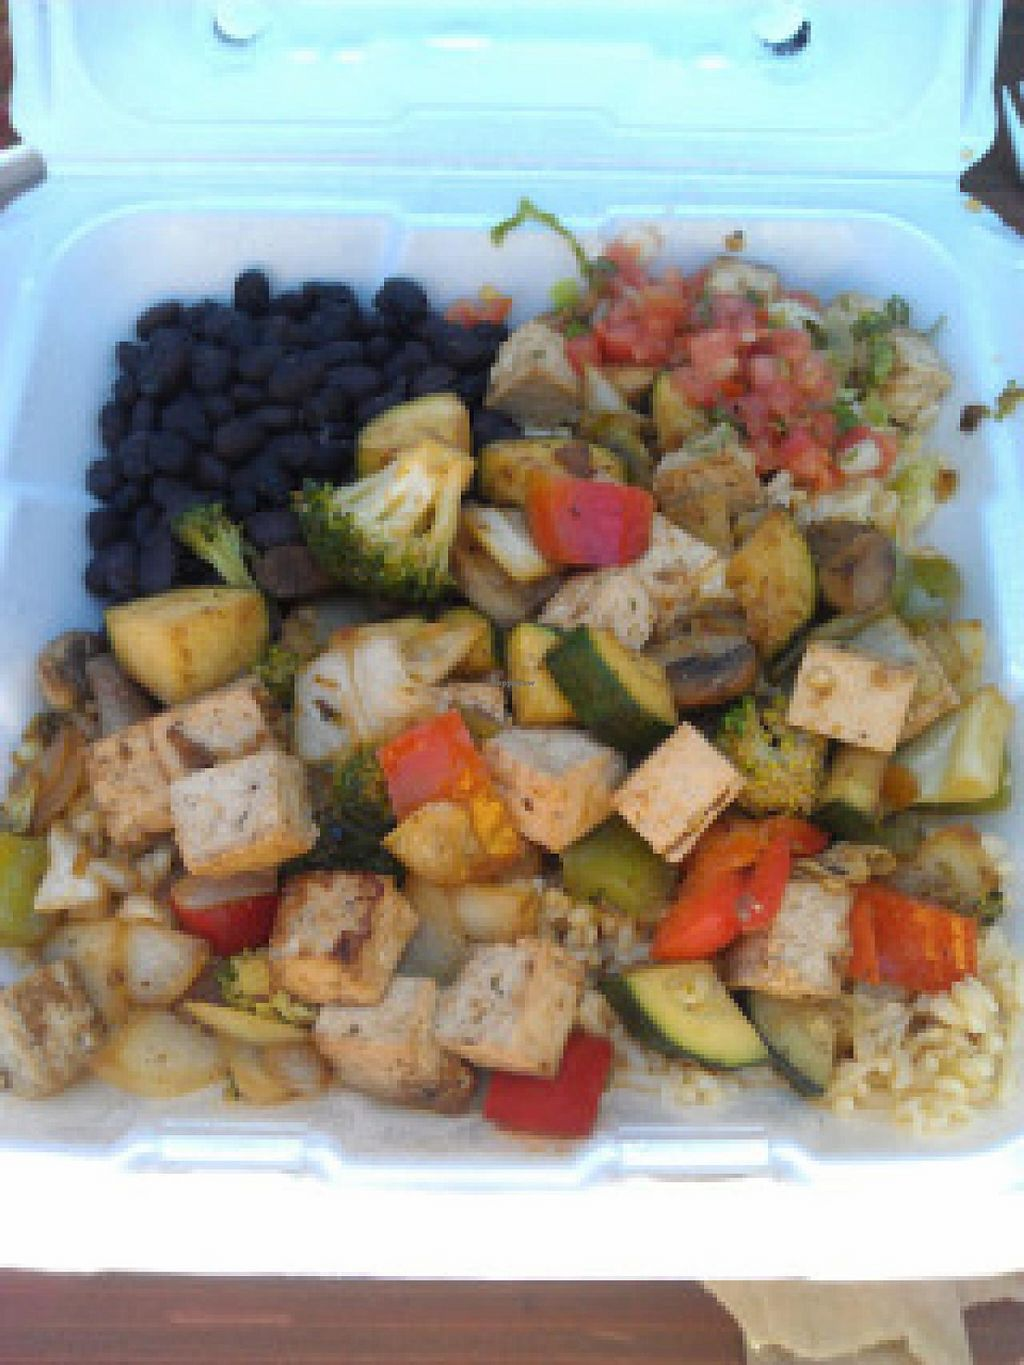 """Photo of Wahoo's - 4S Ranch  by <a href=""""/members/profile/Meggie%20and%20Ben"""">Meggie and Ben</a> <br/>Wafu Bowl: Sautéed Polynesian tofu and banzai veggies over brown rice <br/> January 4, 2015  - <a href='/contact/abuse/image/28653/89489'>Report</a>"""